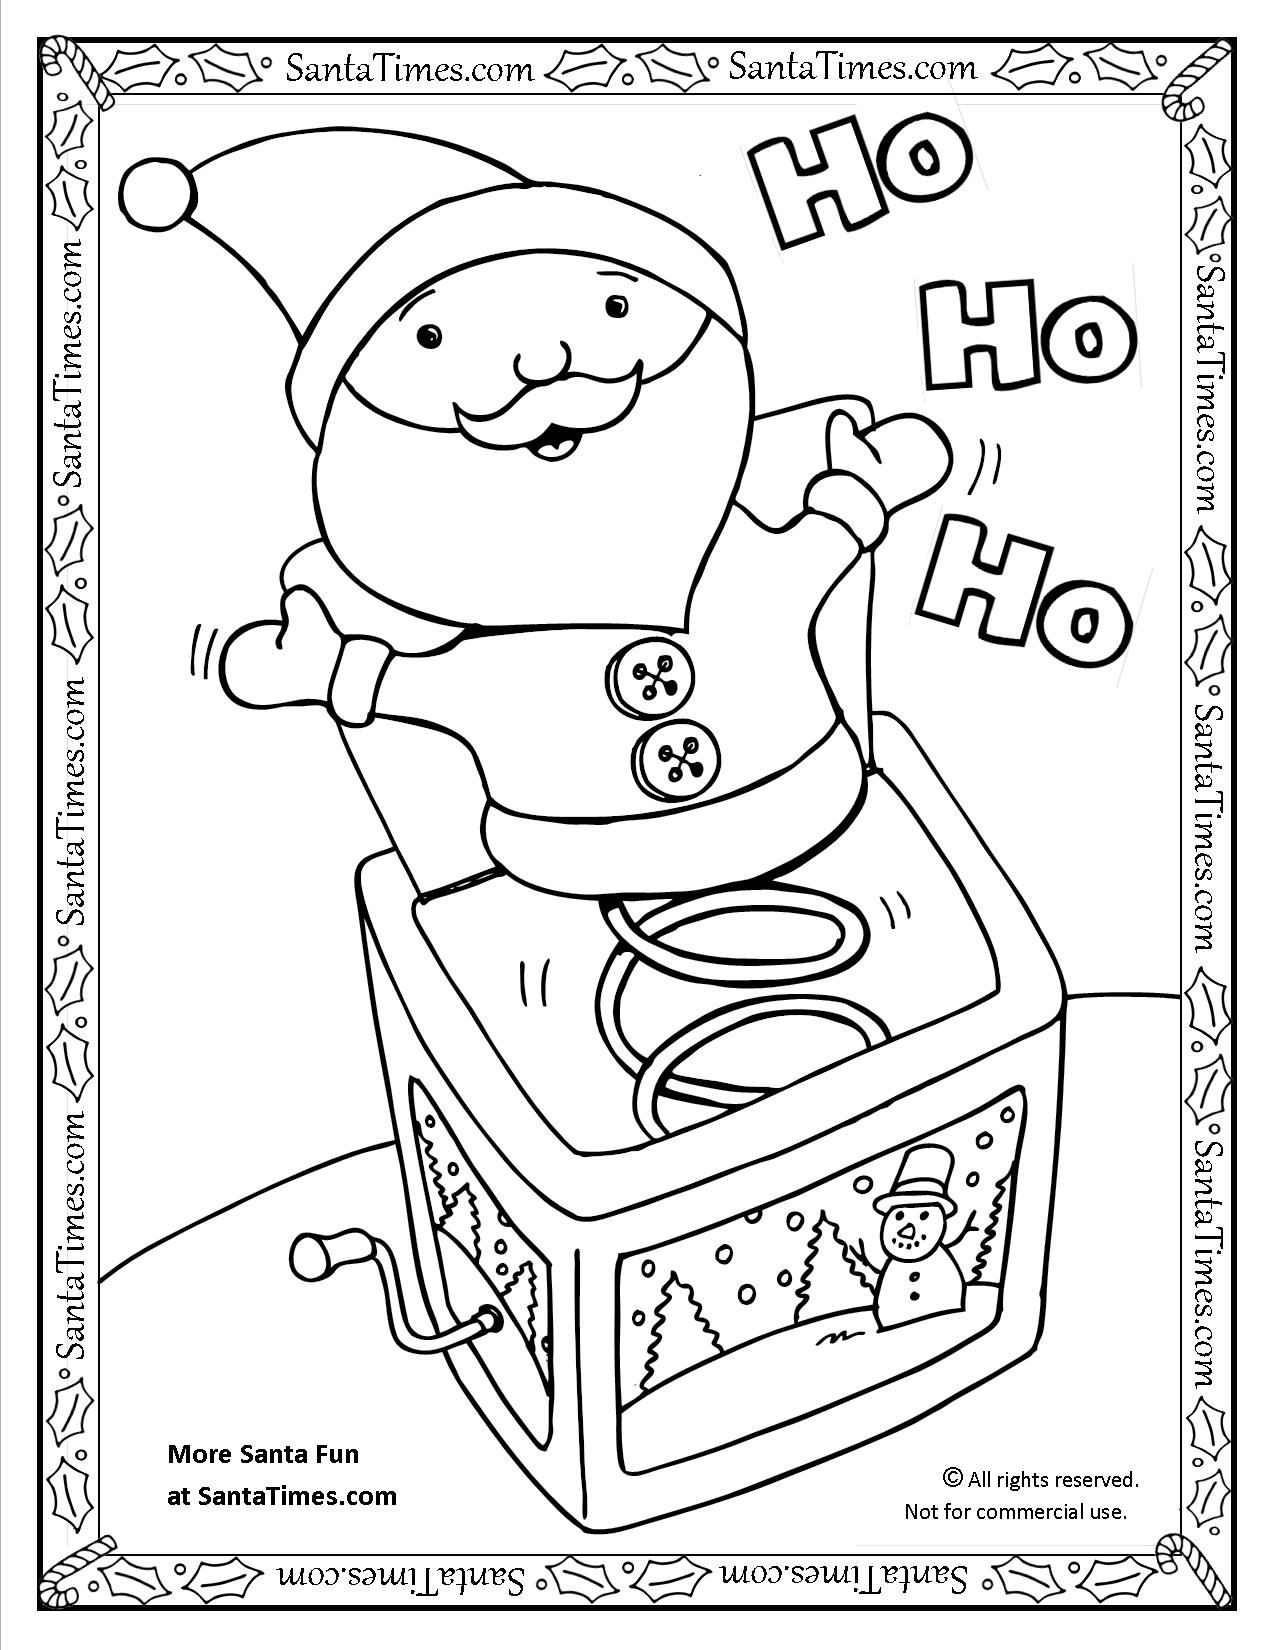 Santa Jack in the Box Coloring Page